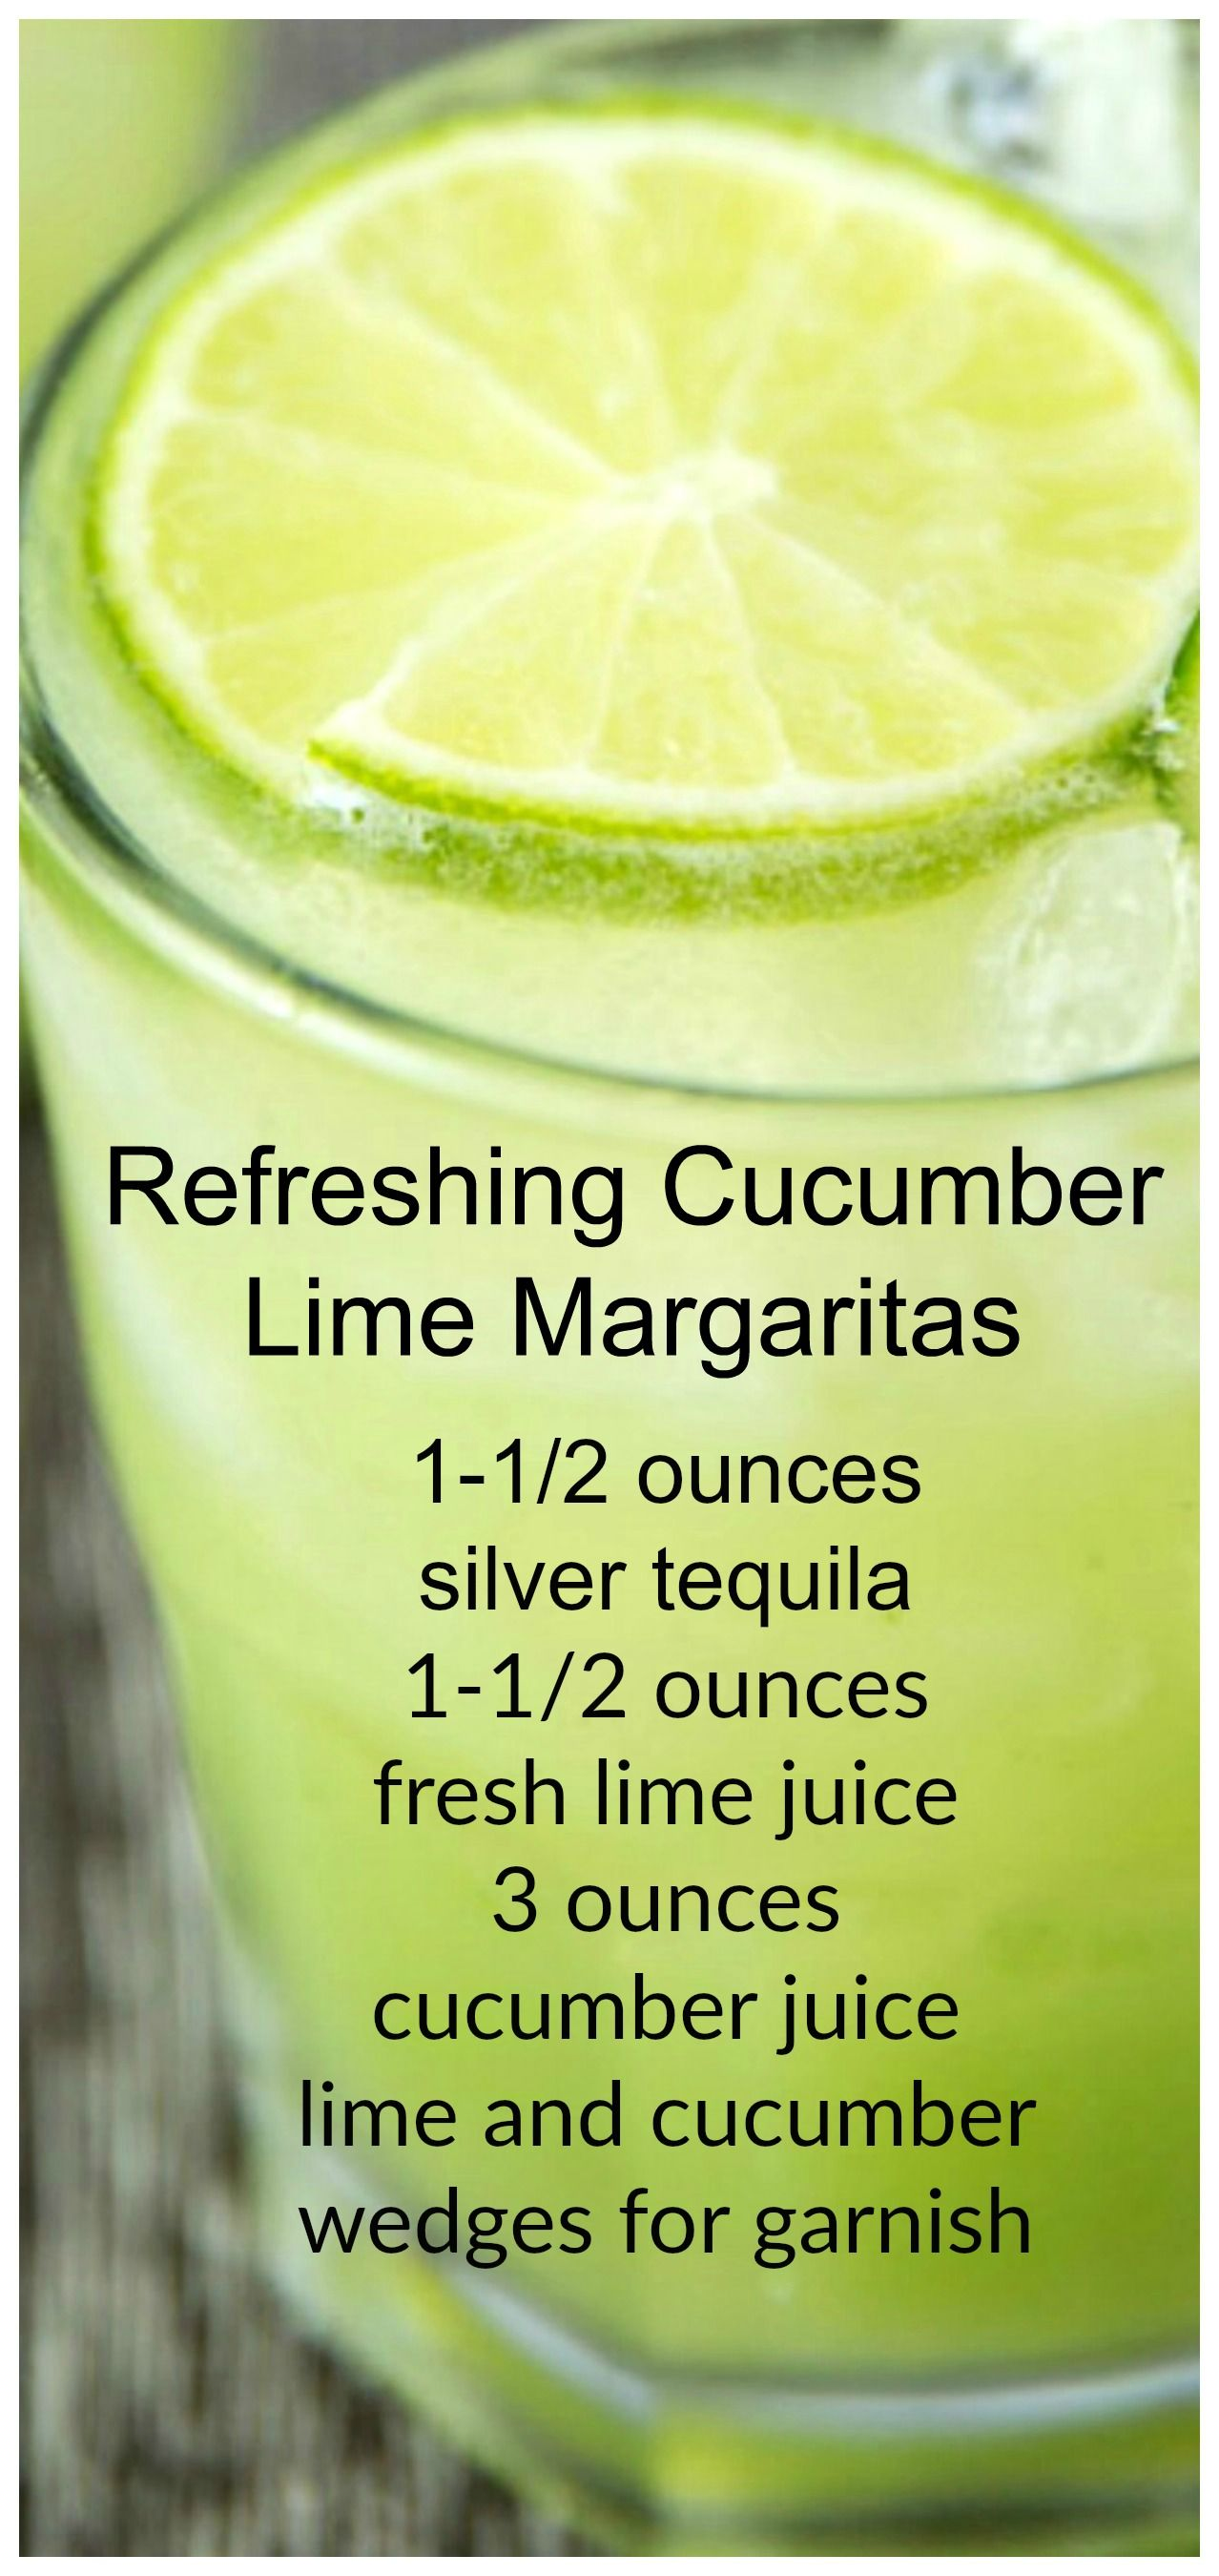 Refreshing Cucumber Lime Margaritas ~ Delicious and only has 135 calories... It's a drink both your mouth and waist will love. #tequiladrinks